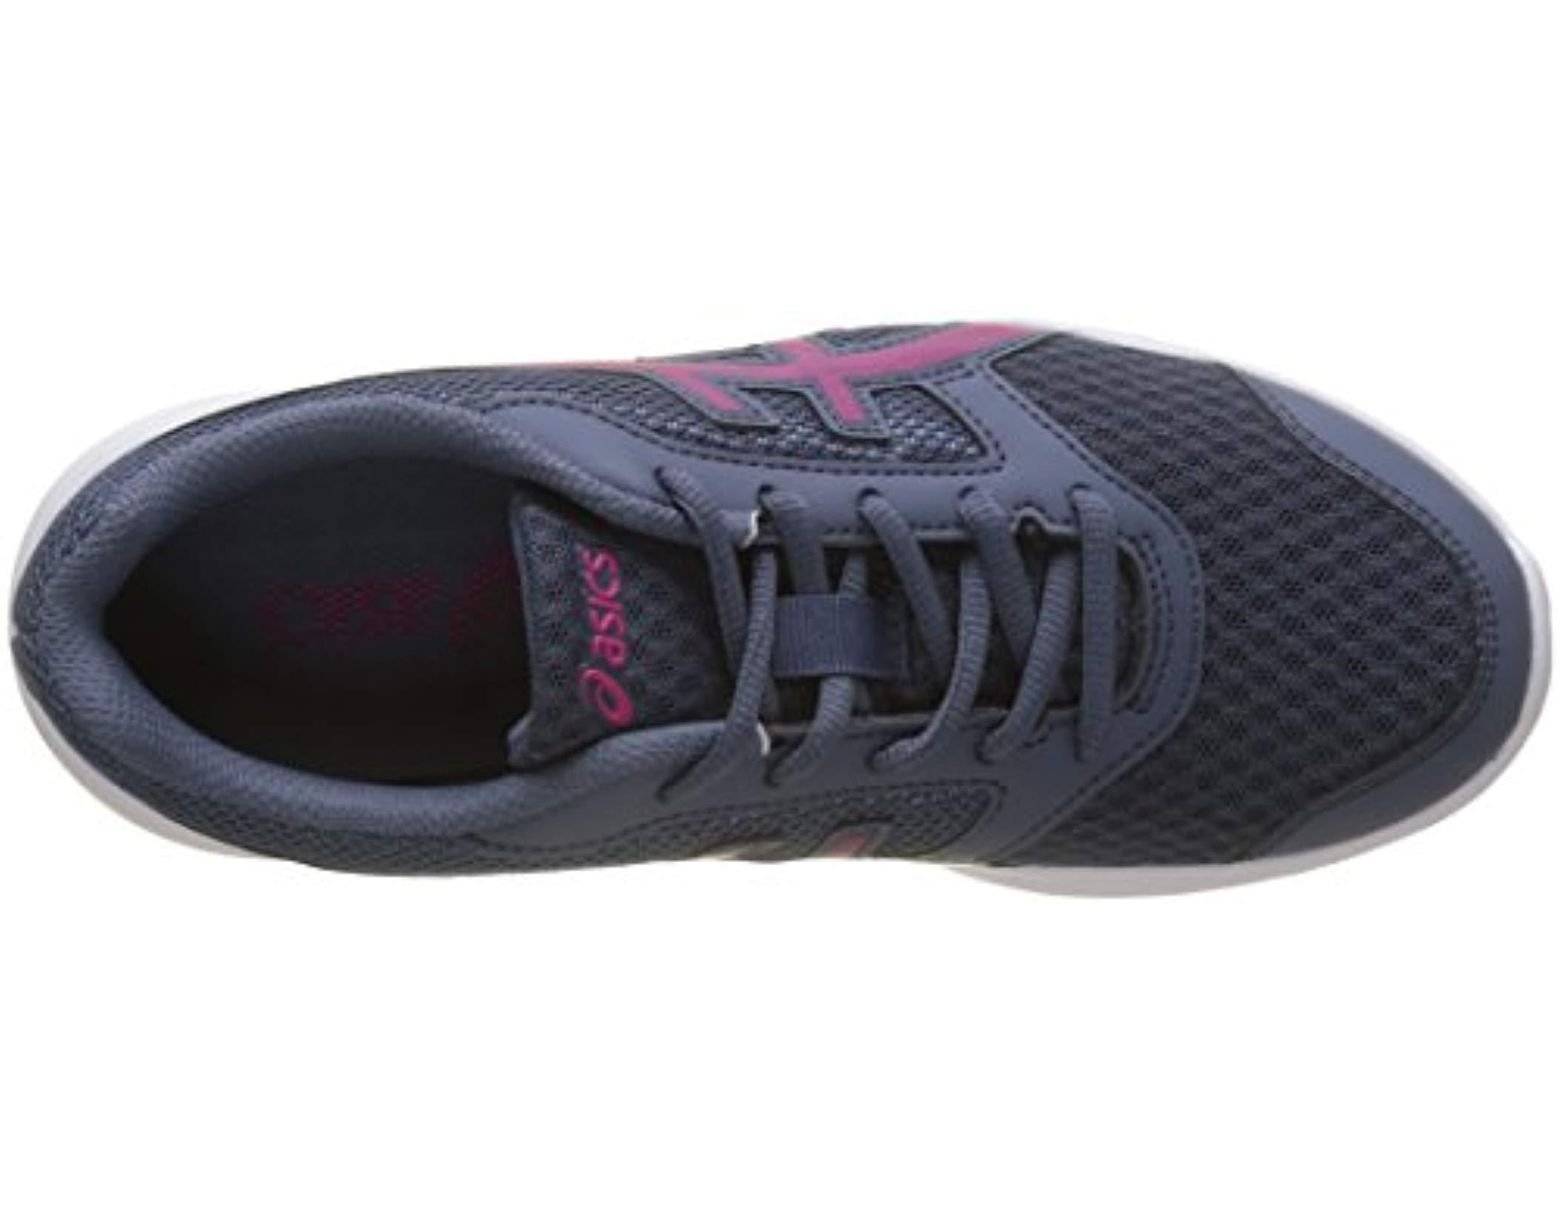 Asics In Save Blue 2 9Lyst Running Stormer Shoes kXiOPZuT